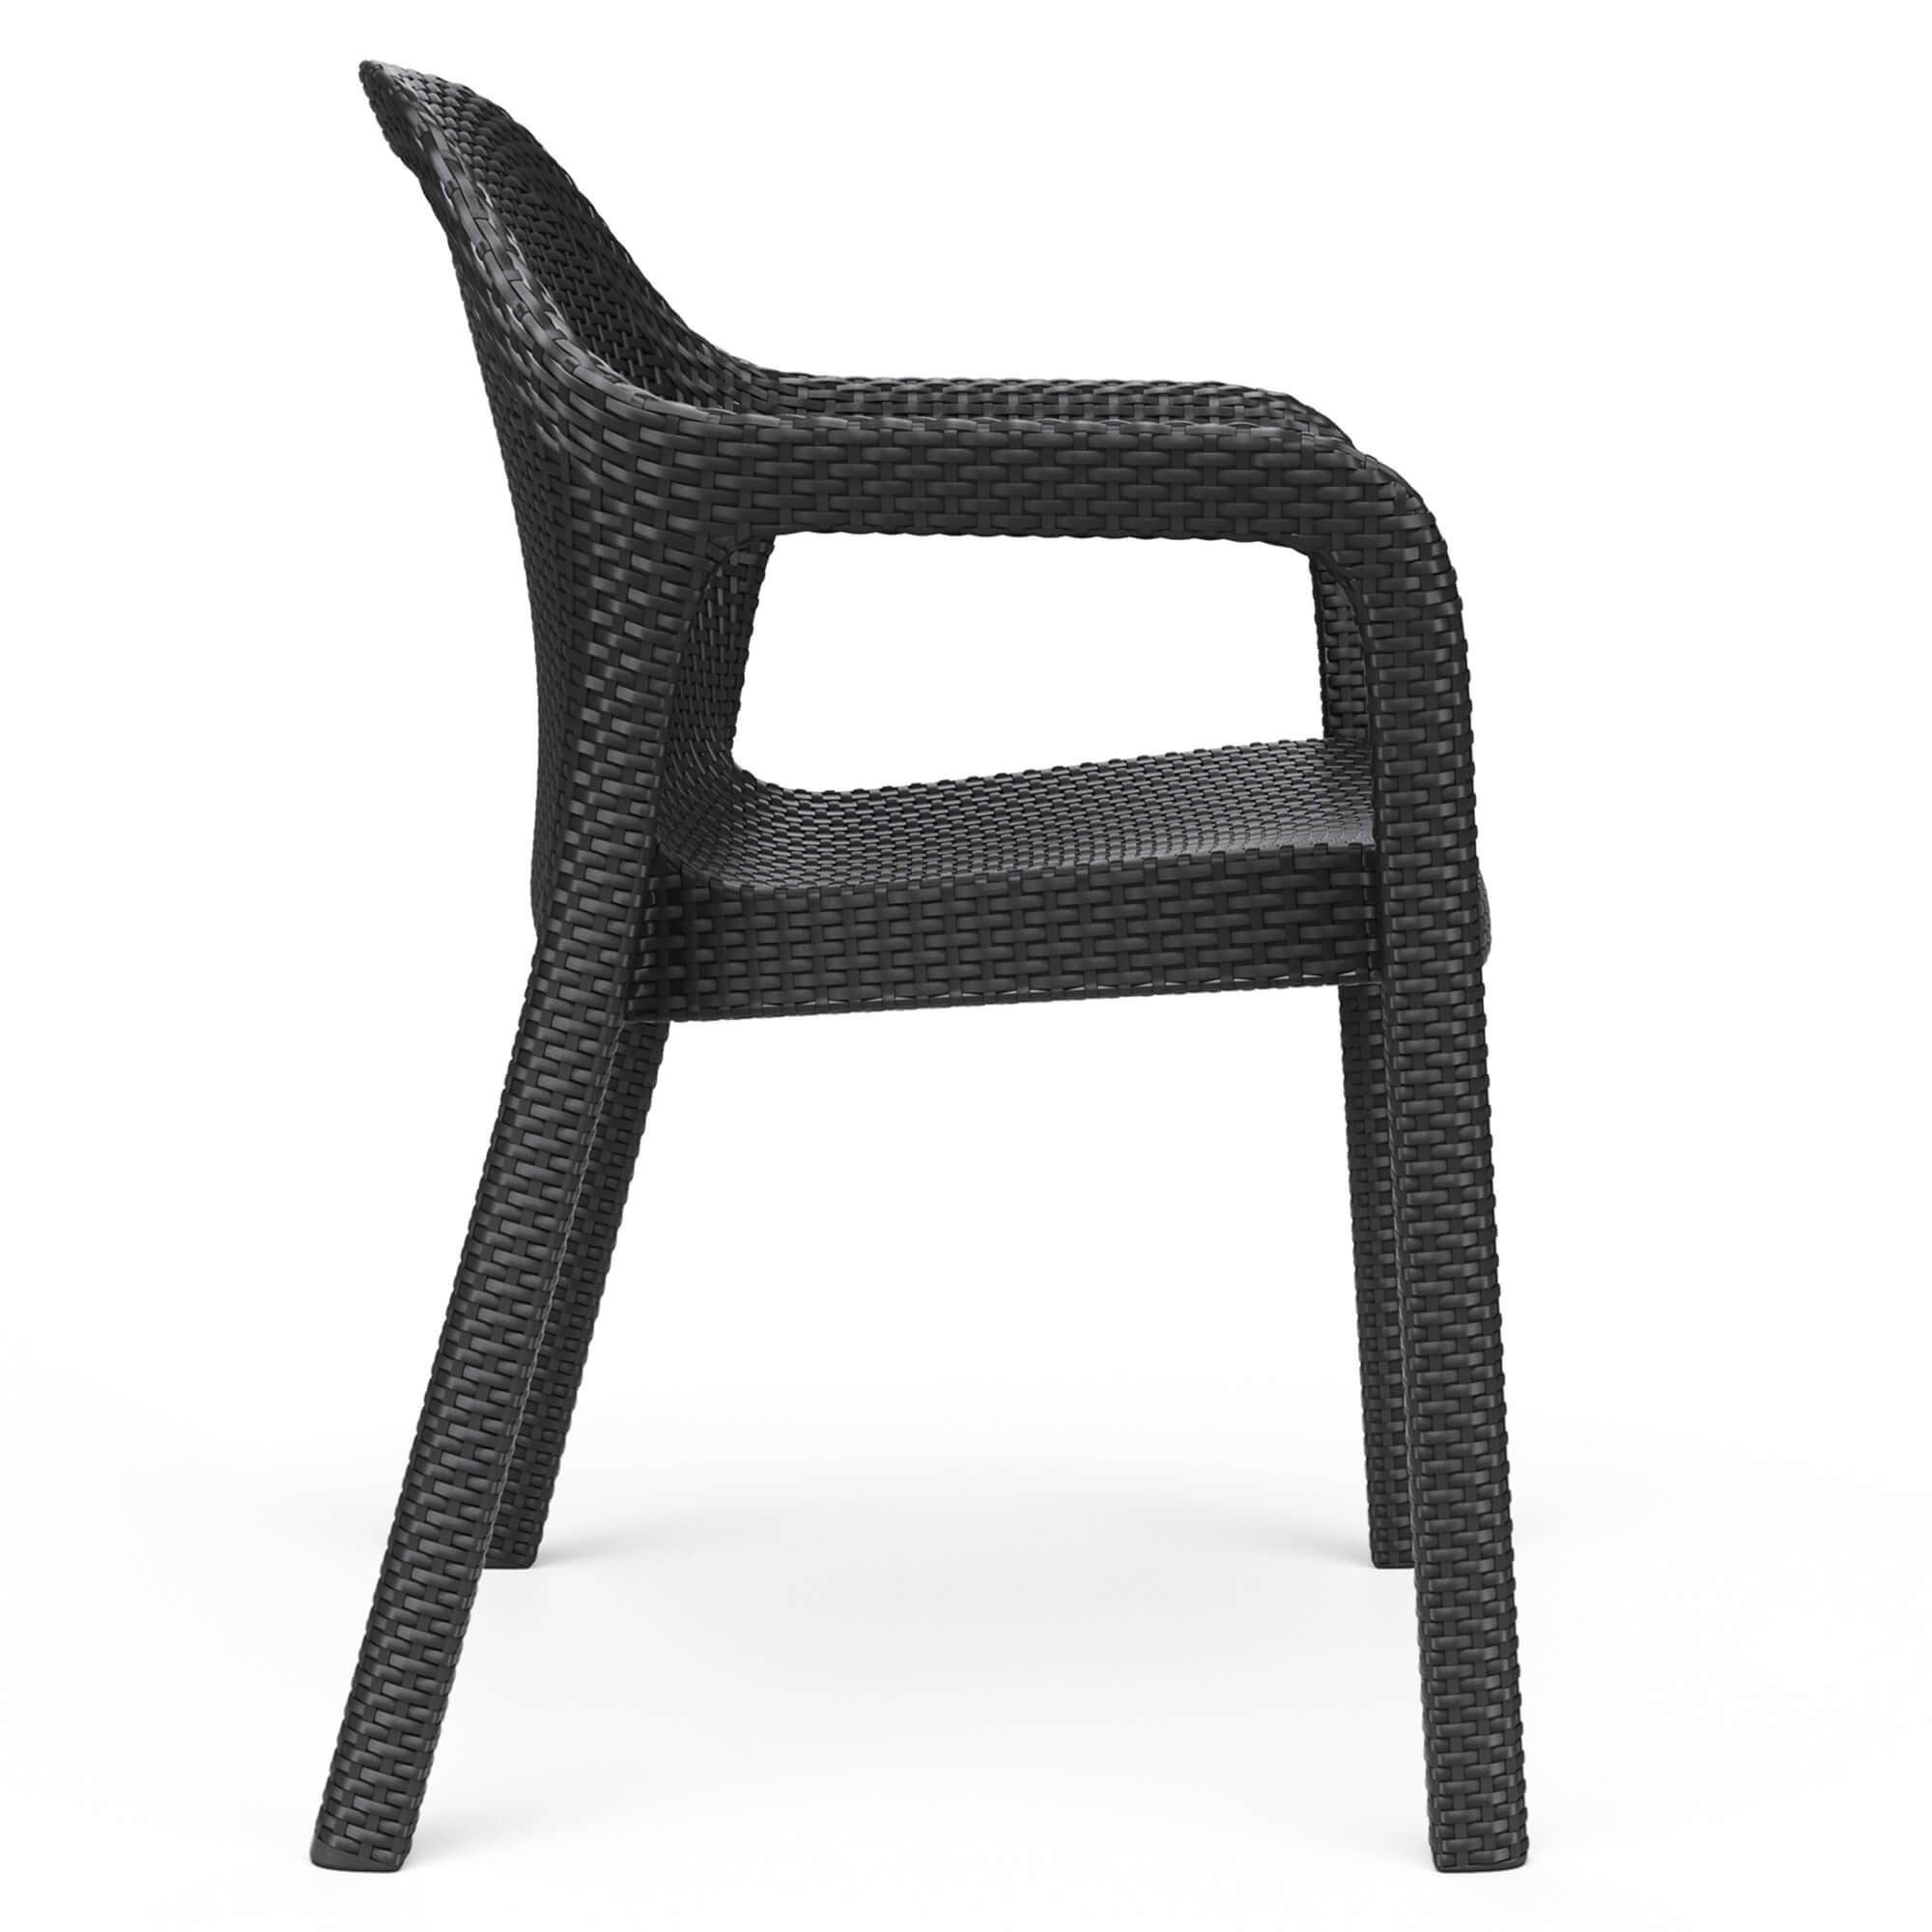 Chaise empilable moka - Image 3